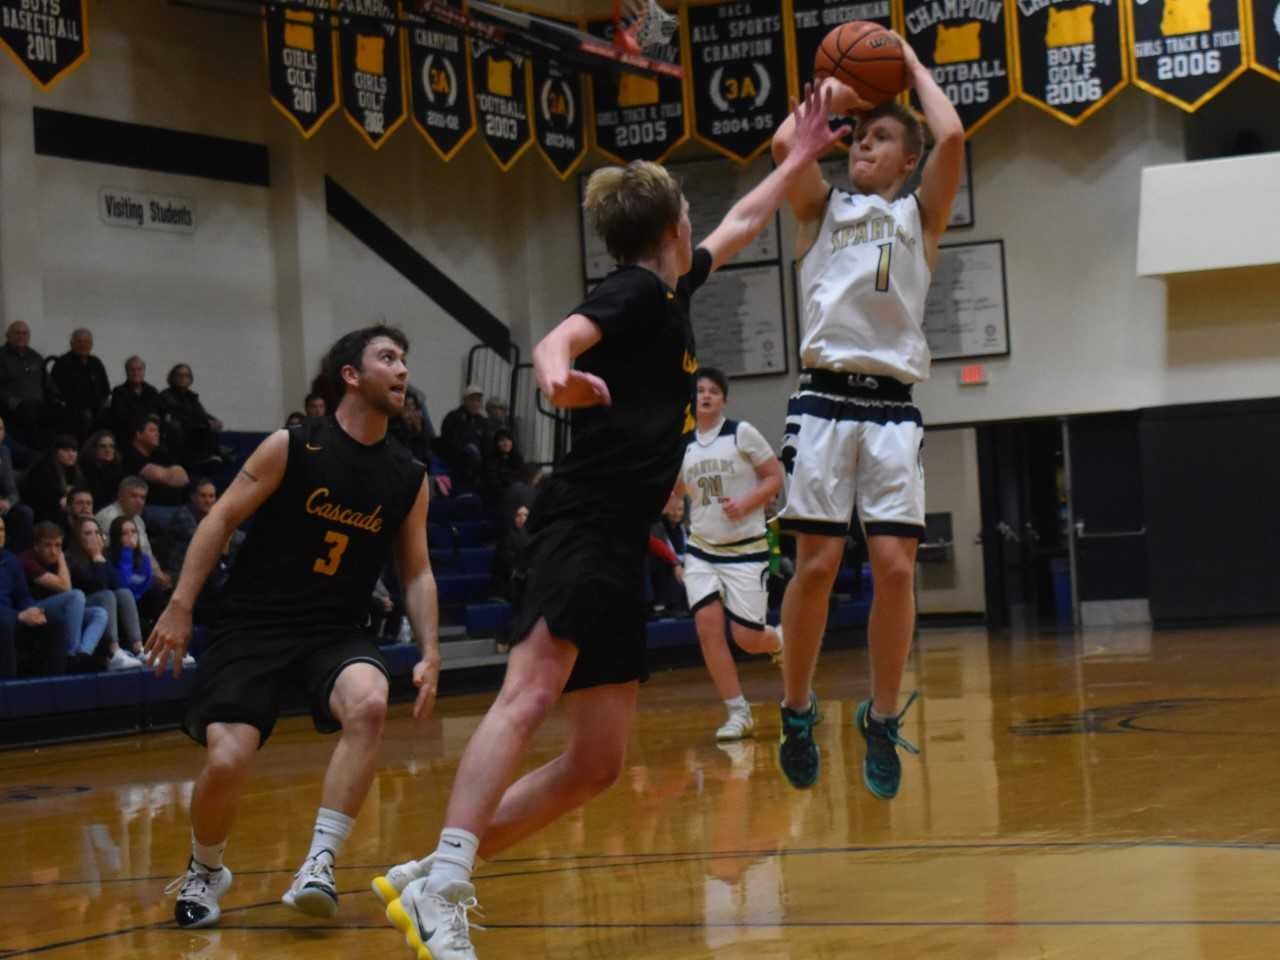 Marist Catholic's Nick Stice shoots over Cascade's Carson Molan on Tuesday night. (Photo by Jeremy McDonald)